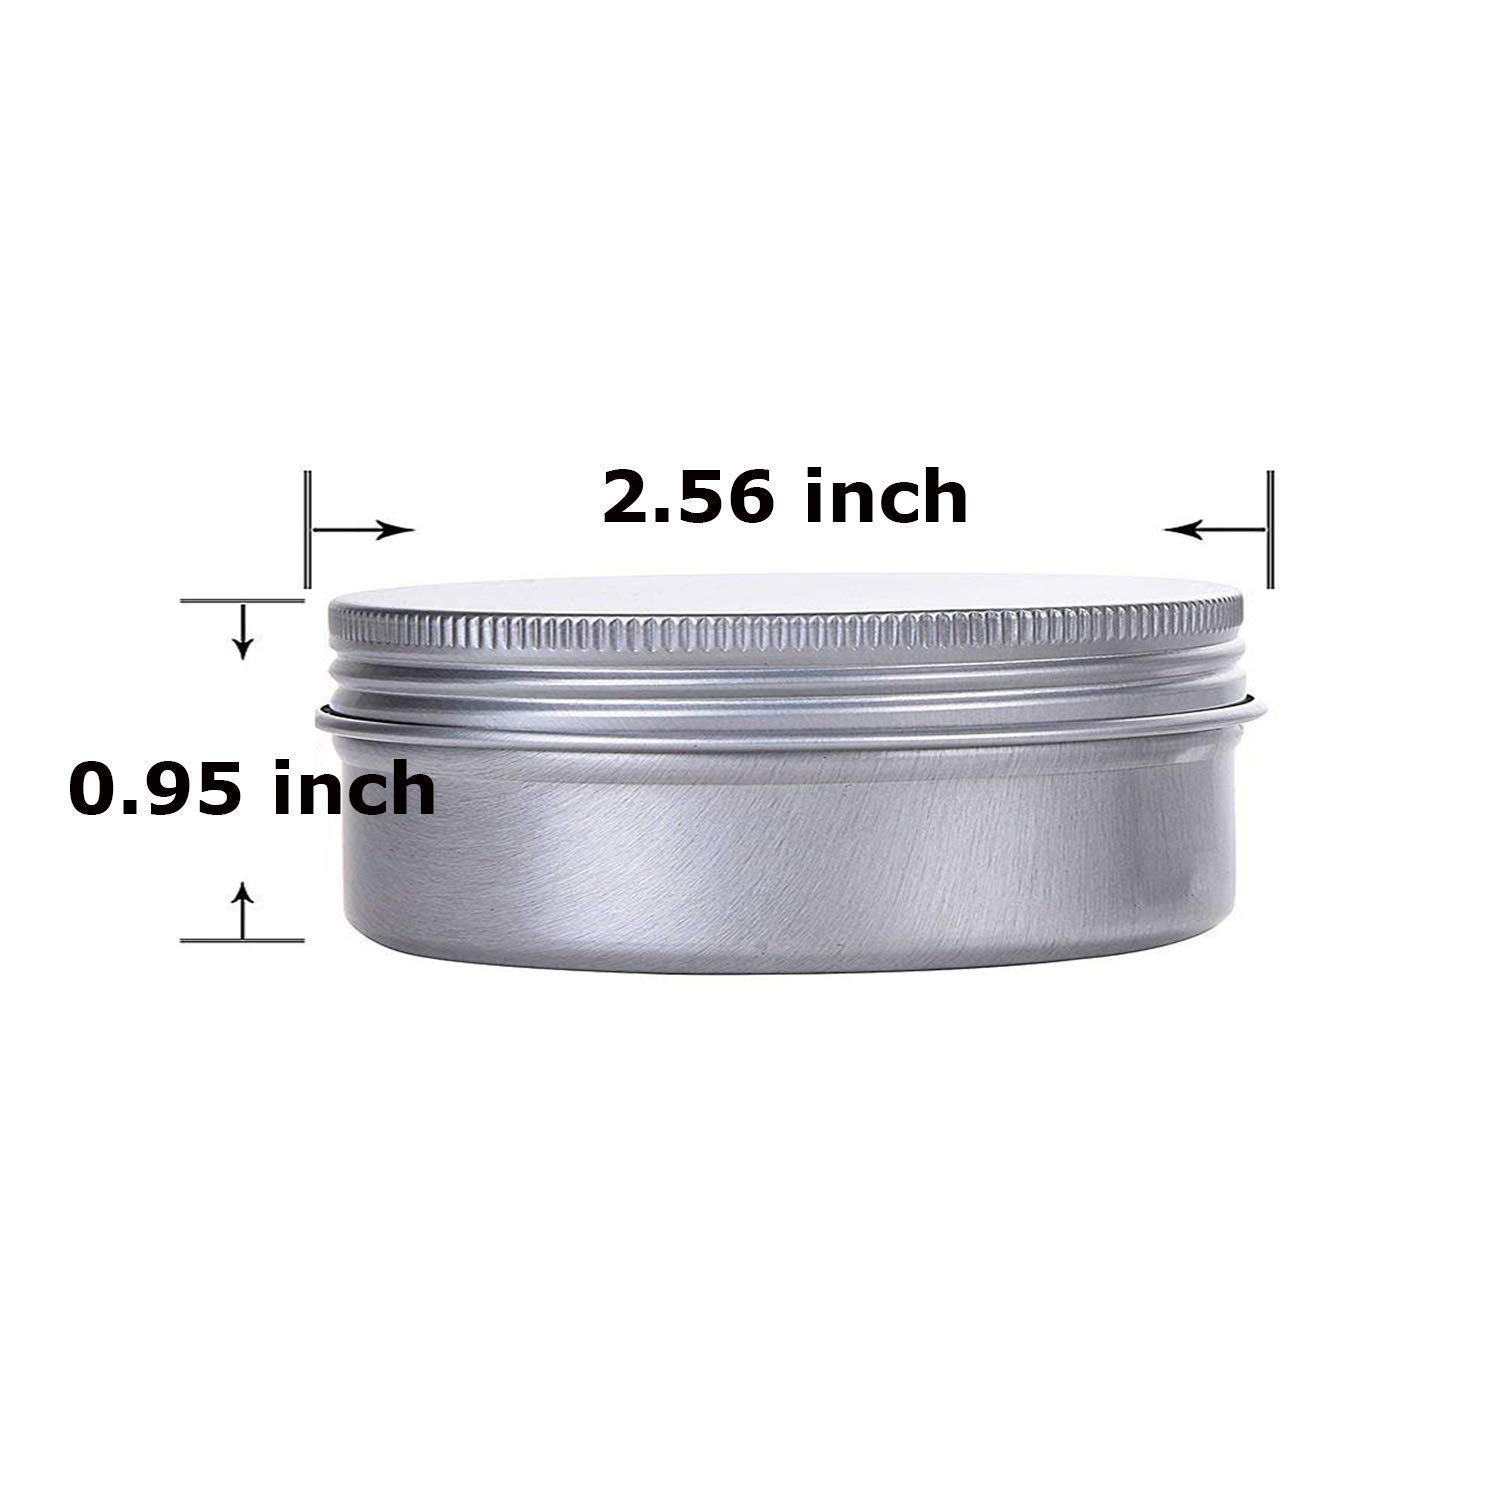 Aluminum tin jar 2oz refillable containers 60mlCosmetic small tinAluminum screw lid round tin container bottle for cosmetic ,lip